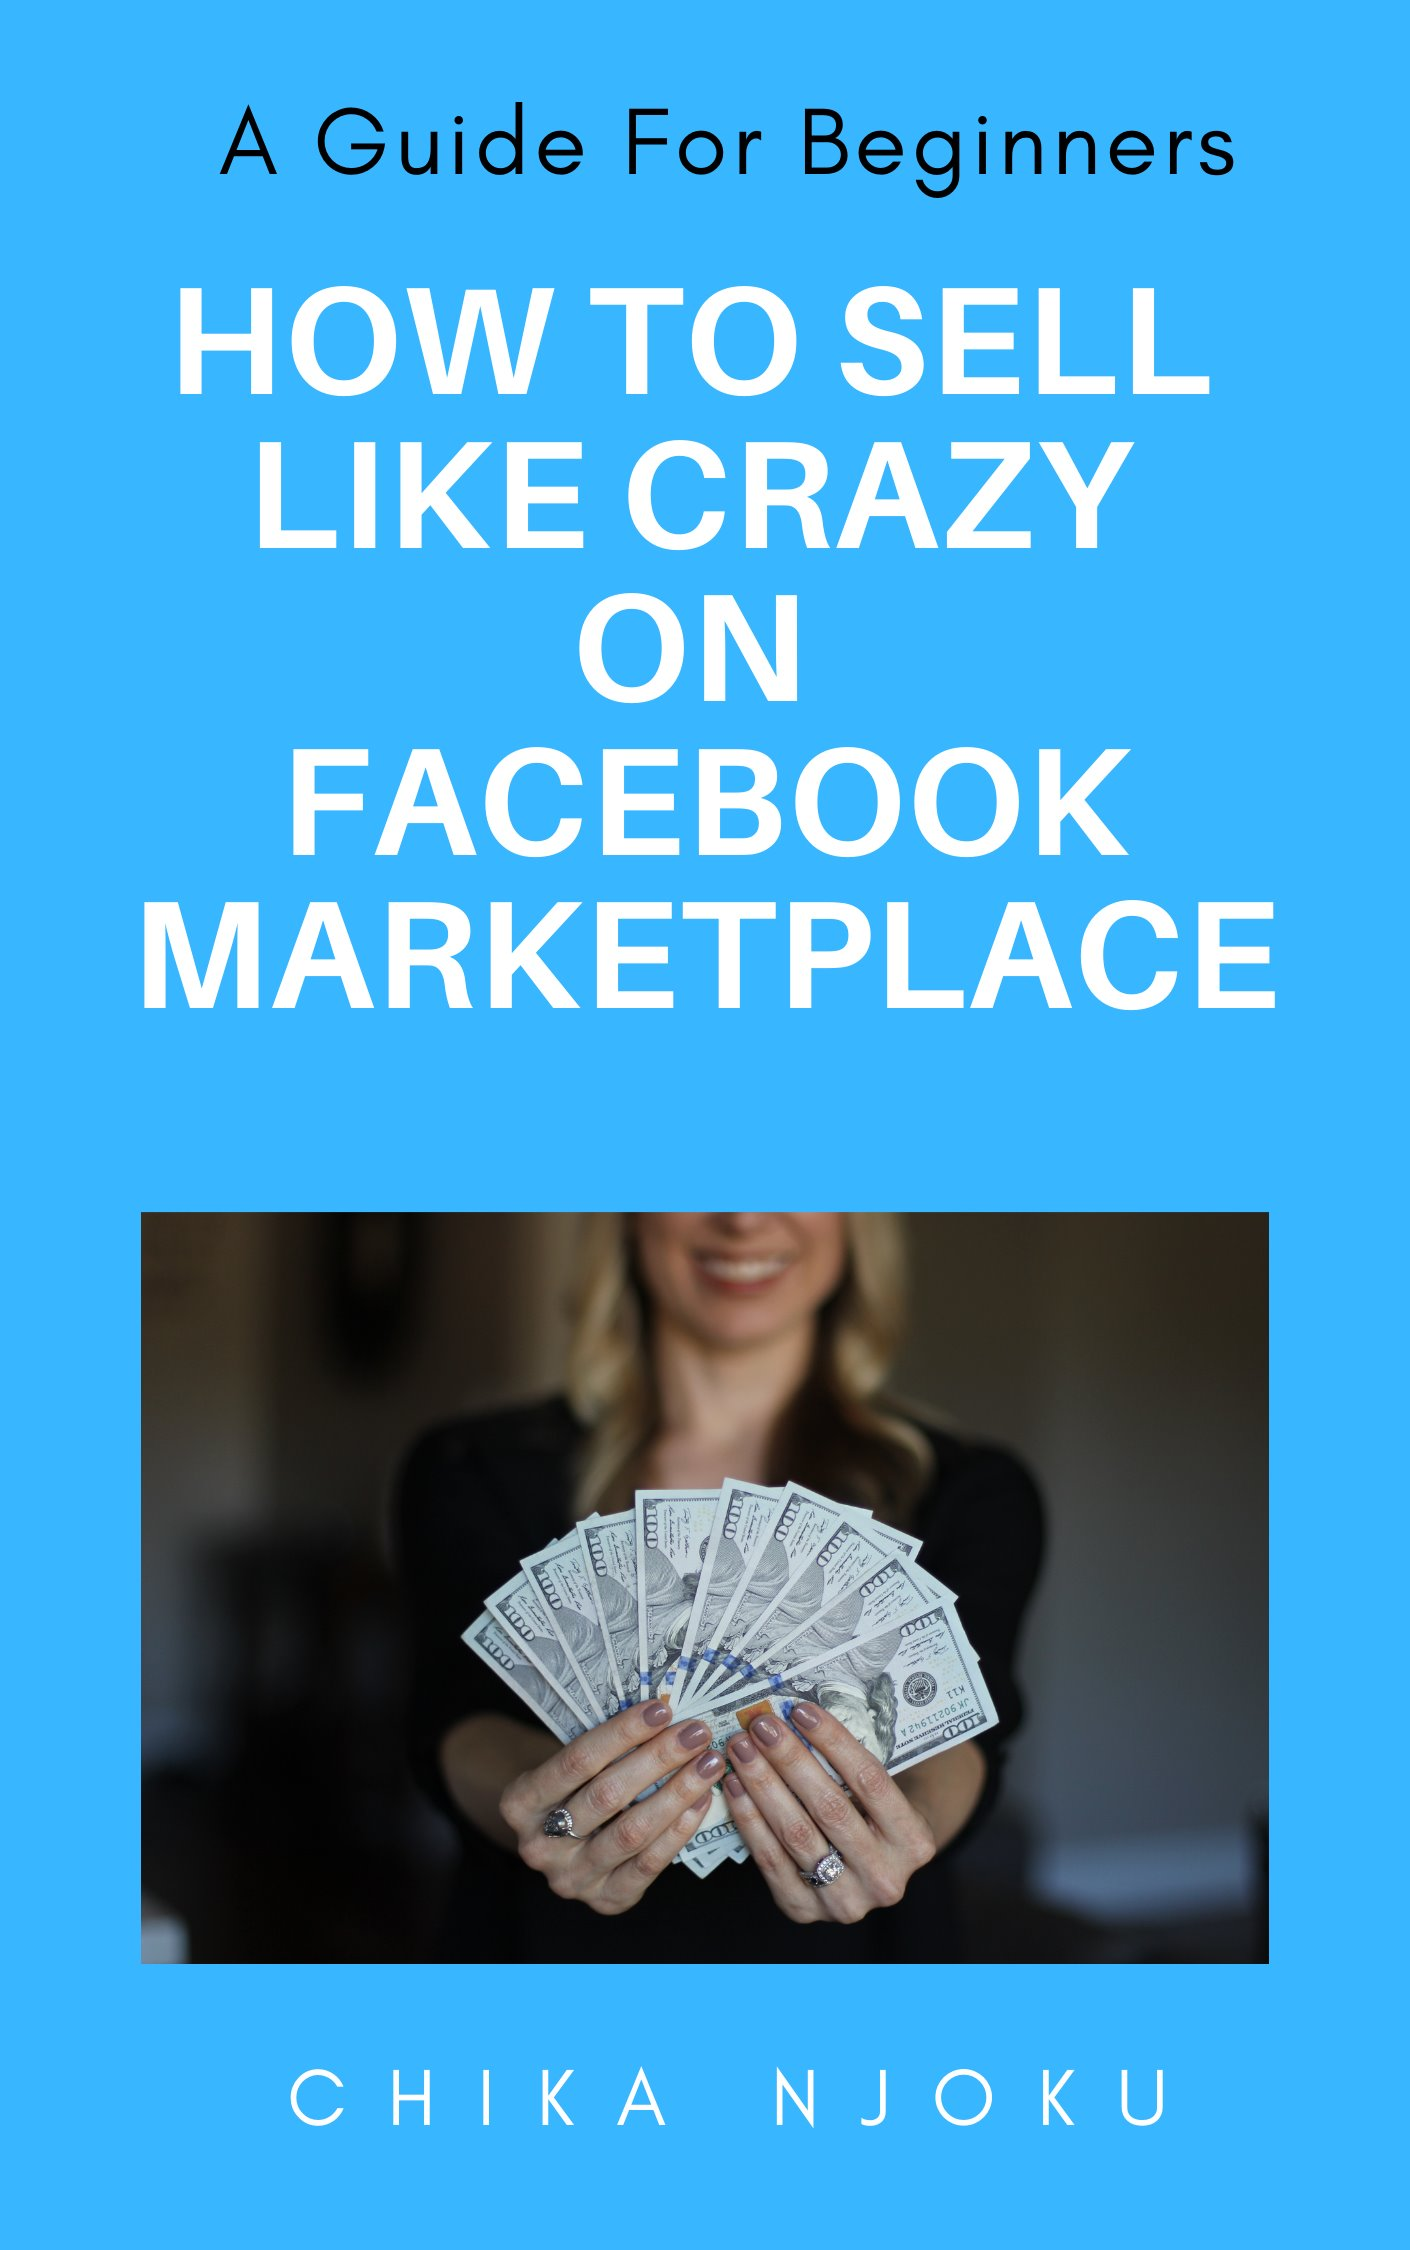 How to Sell Like Crazy On Facebook Marketplace